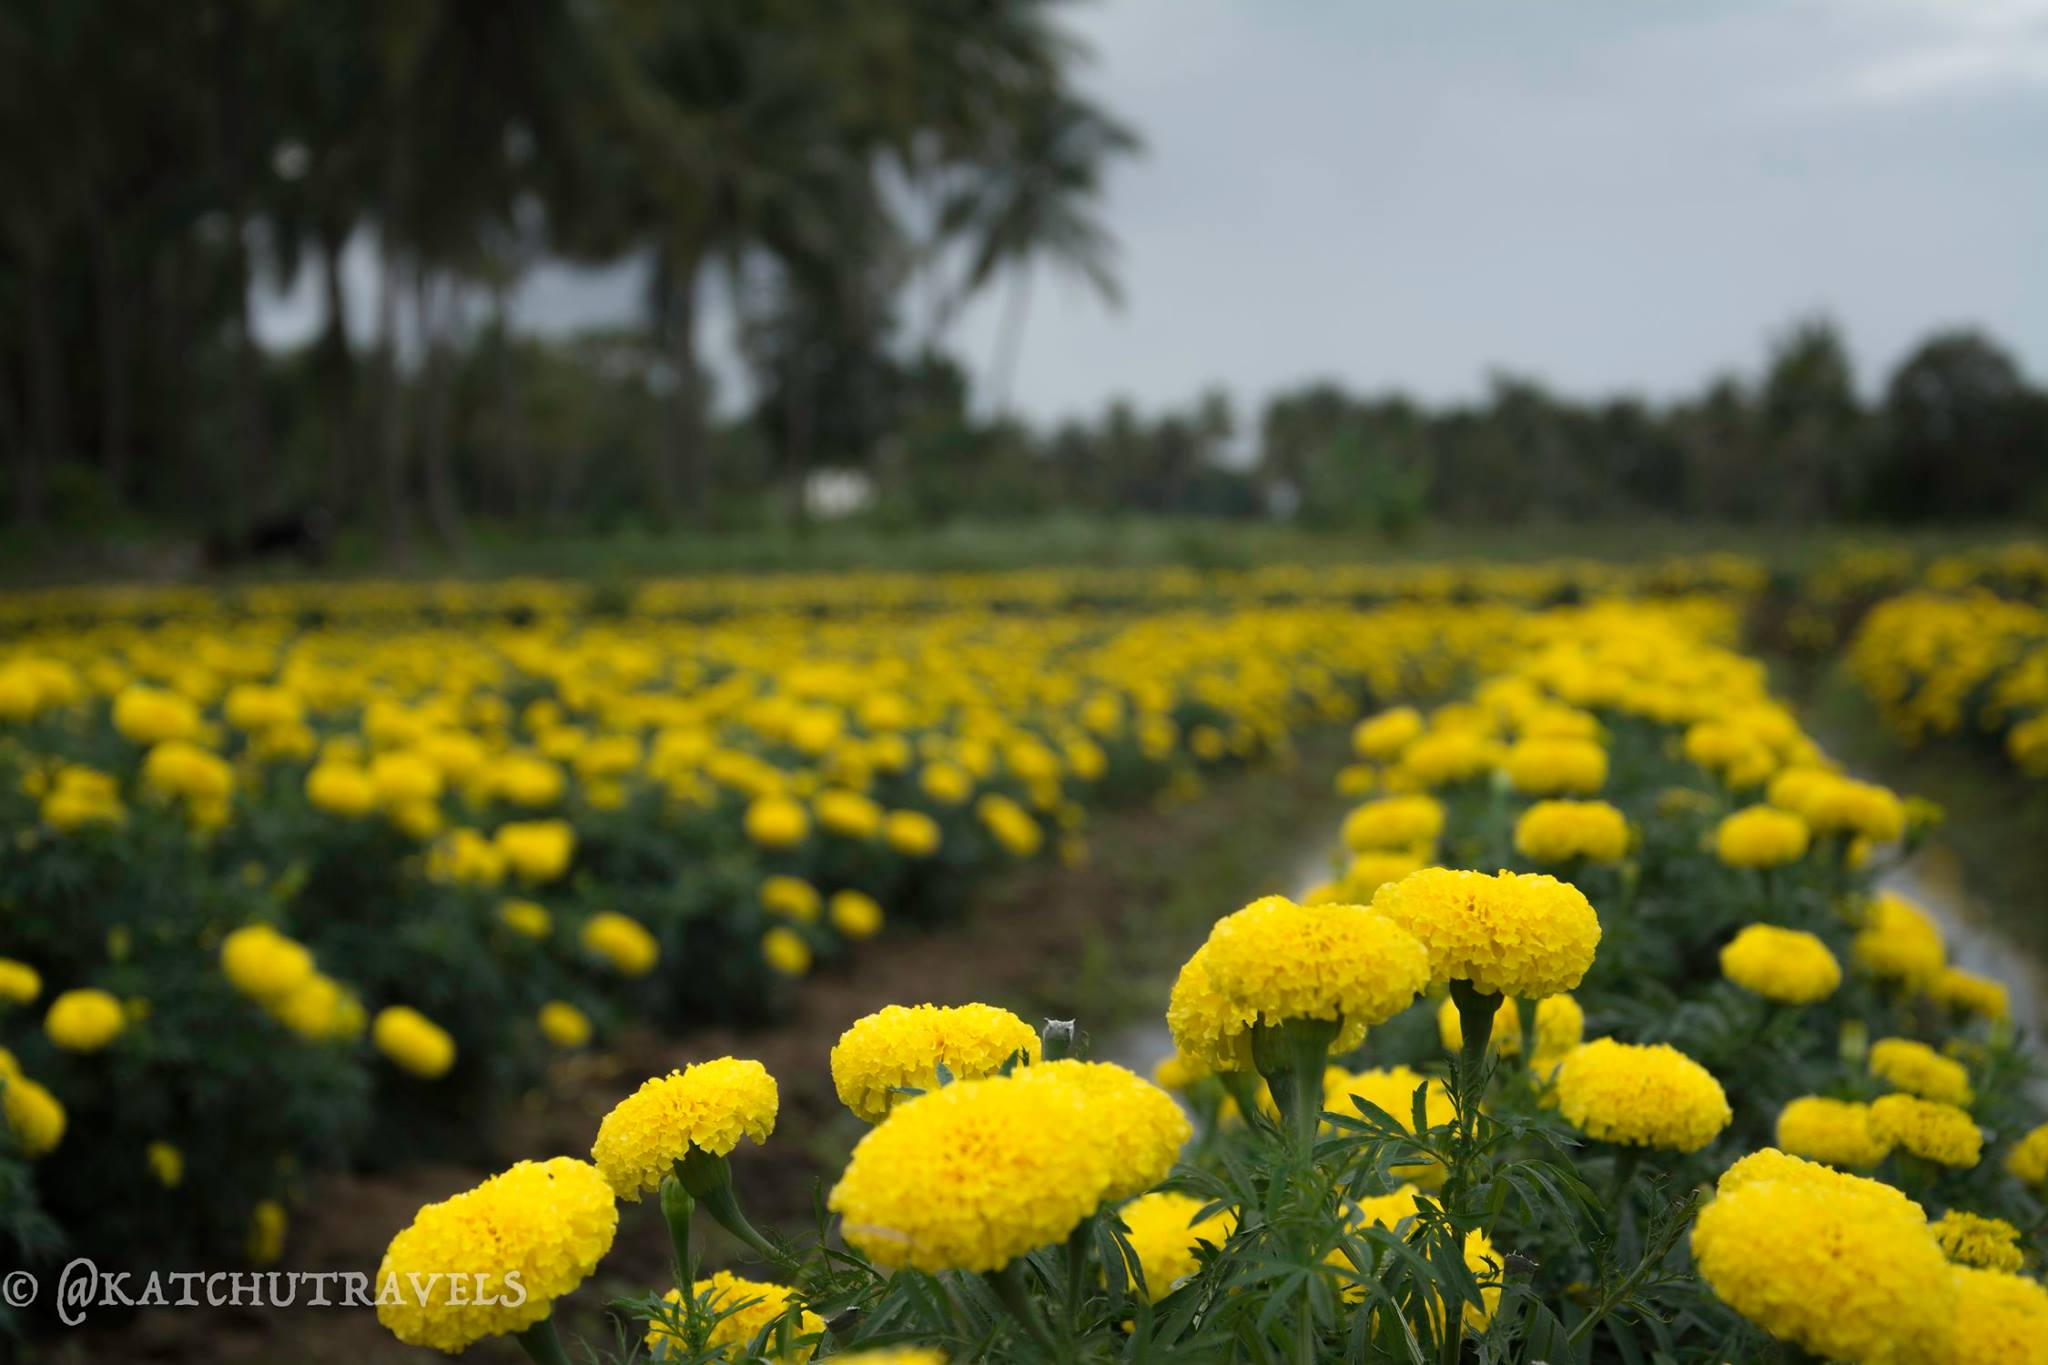 Marigolds in Srirangapatna